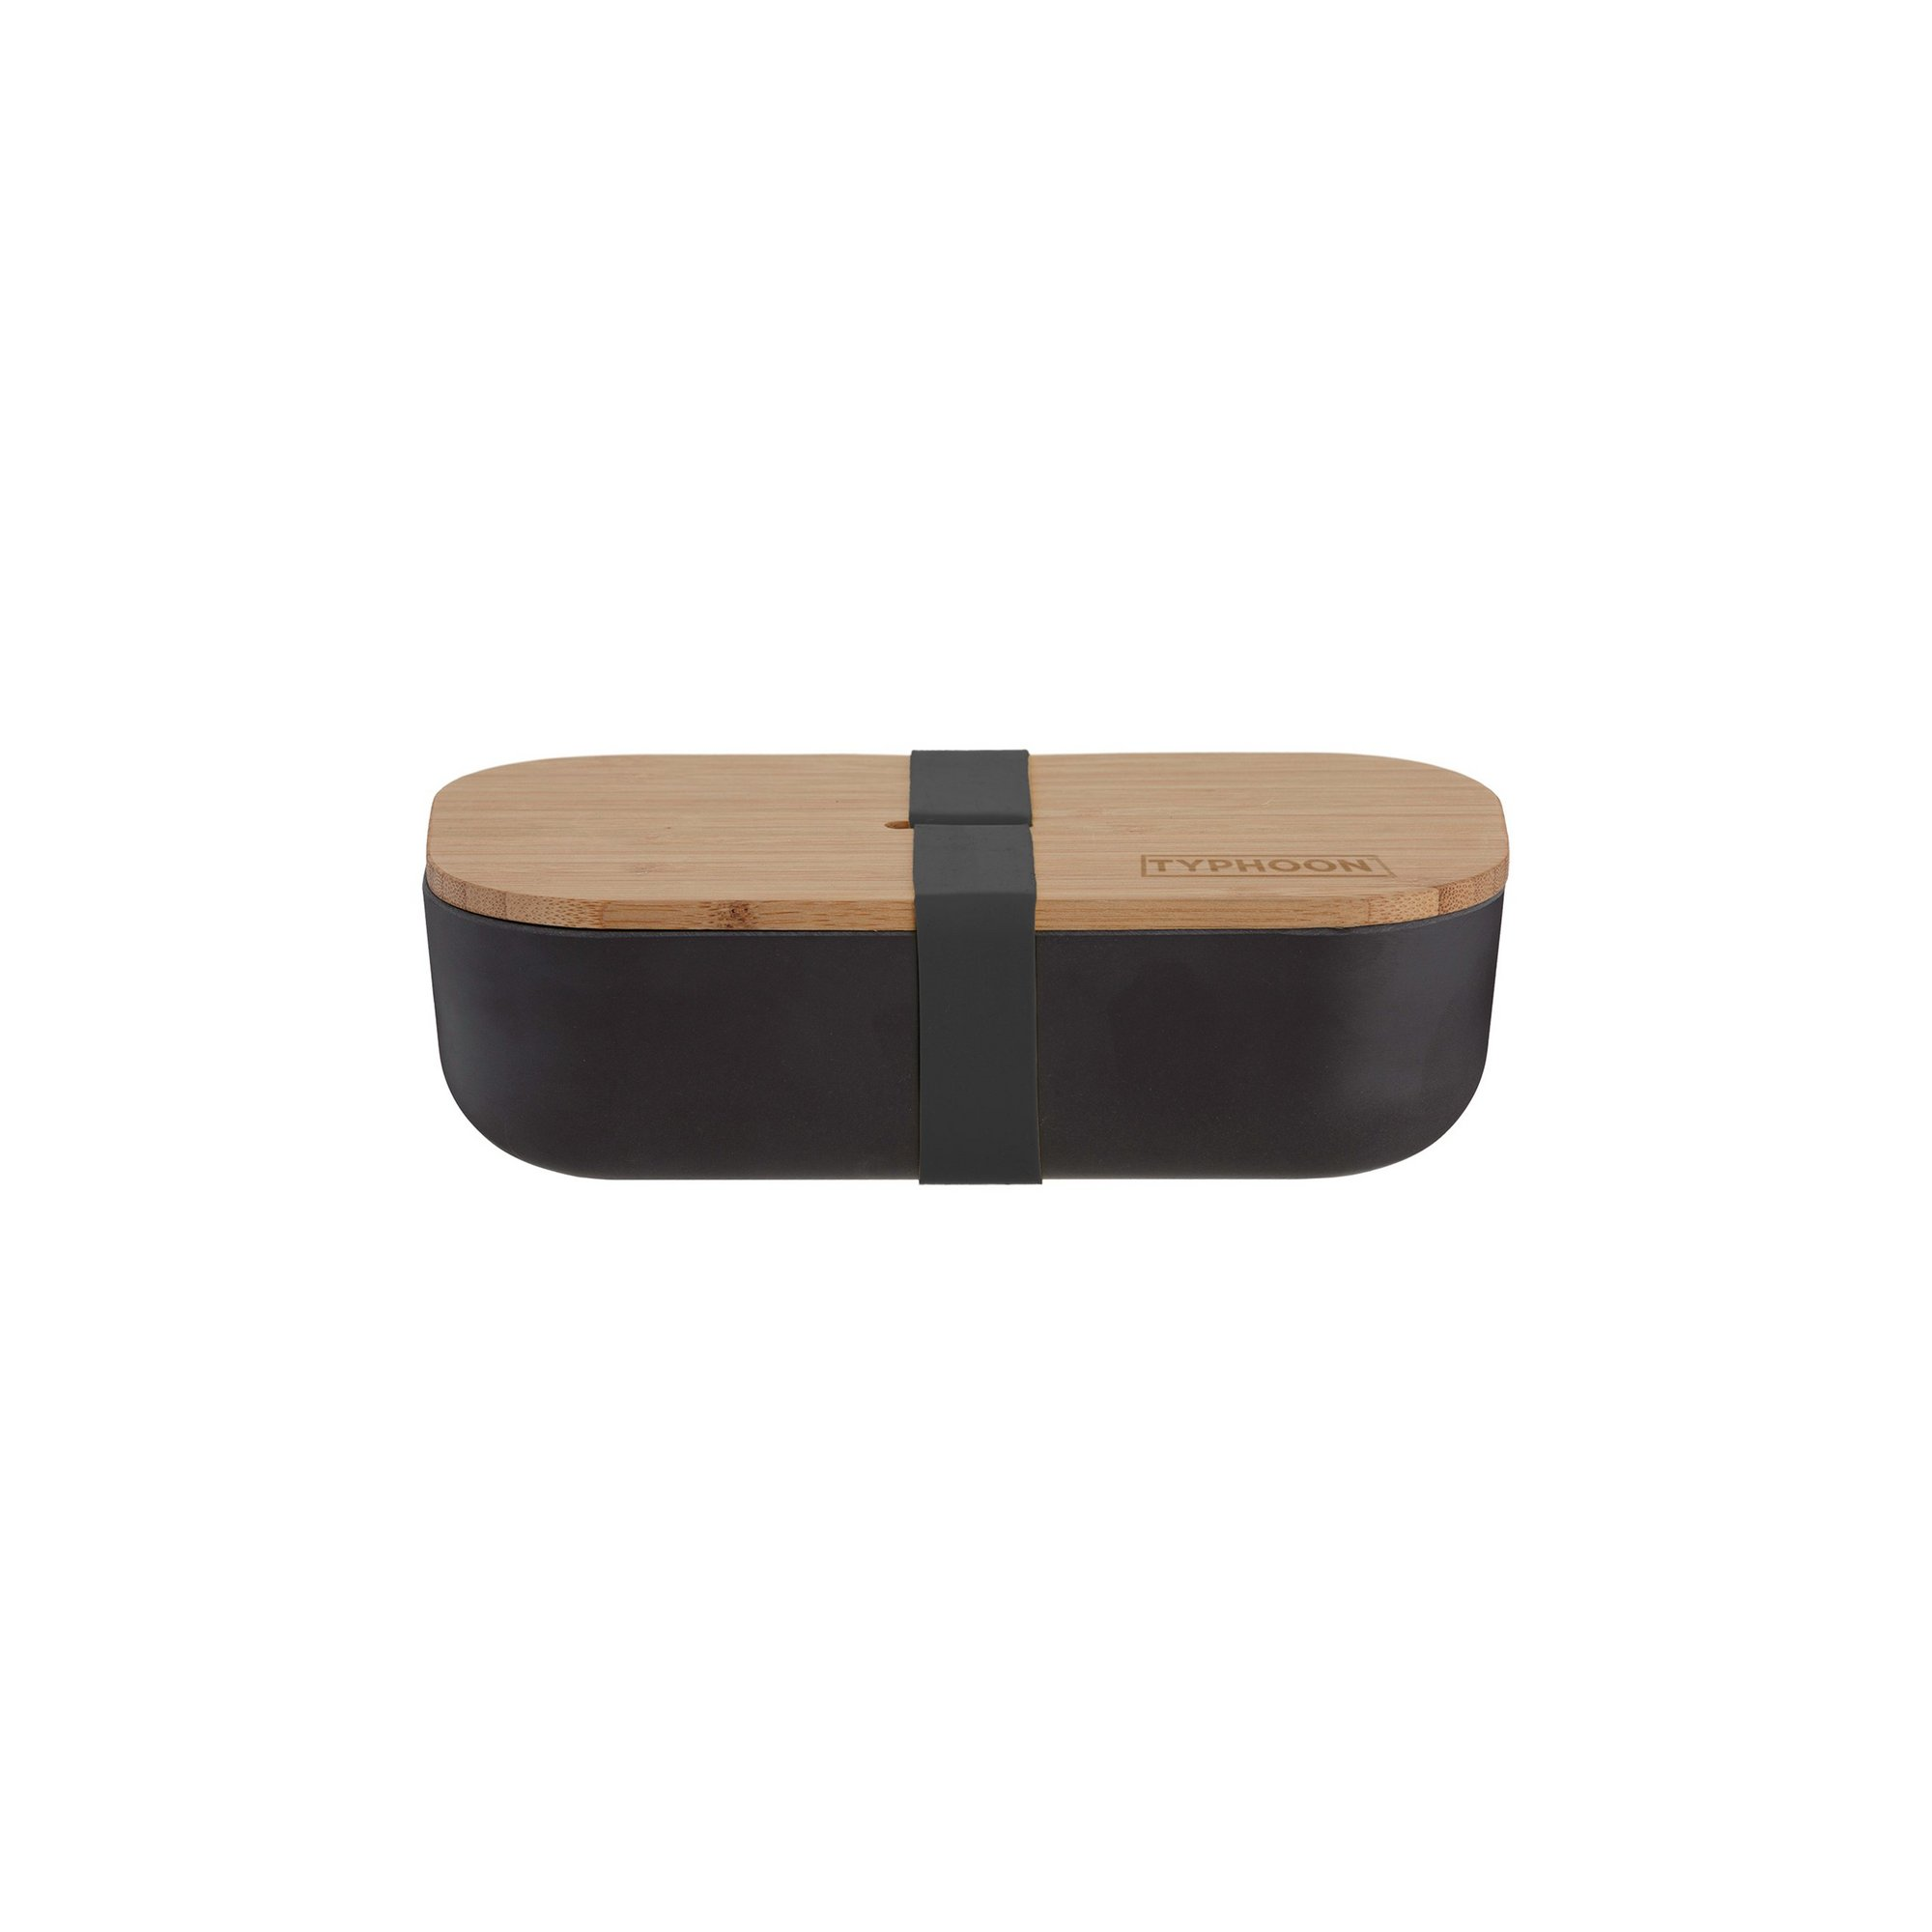 Image of Typhoon Pure Black Bamboo Fibre Lunch Box